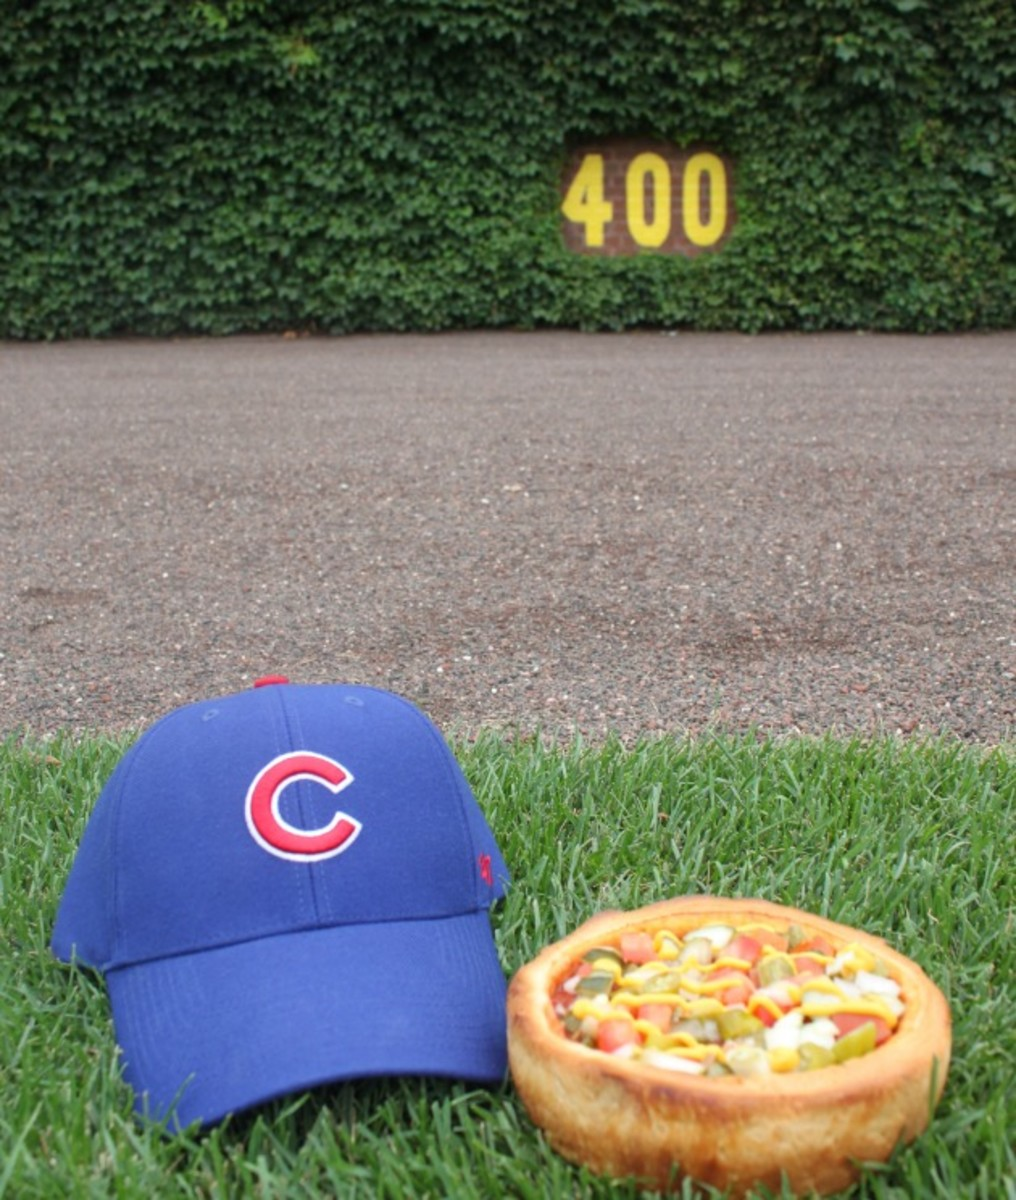 Chicago-cubs-deep-dish-hot-dog-pizza-wrigley-image.jpg